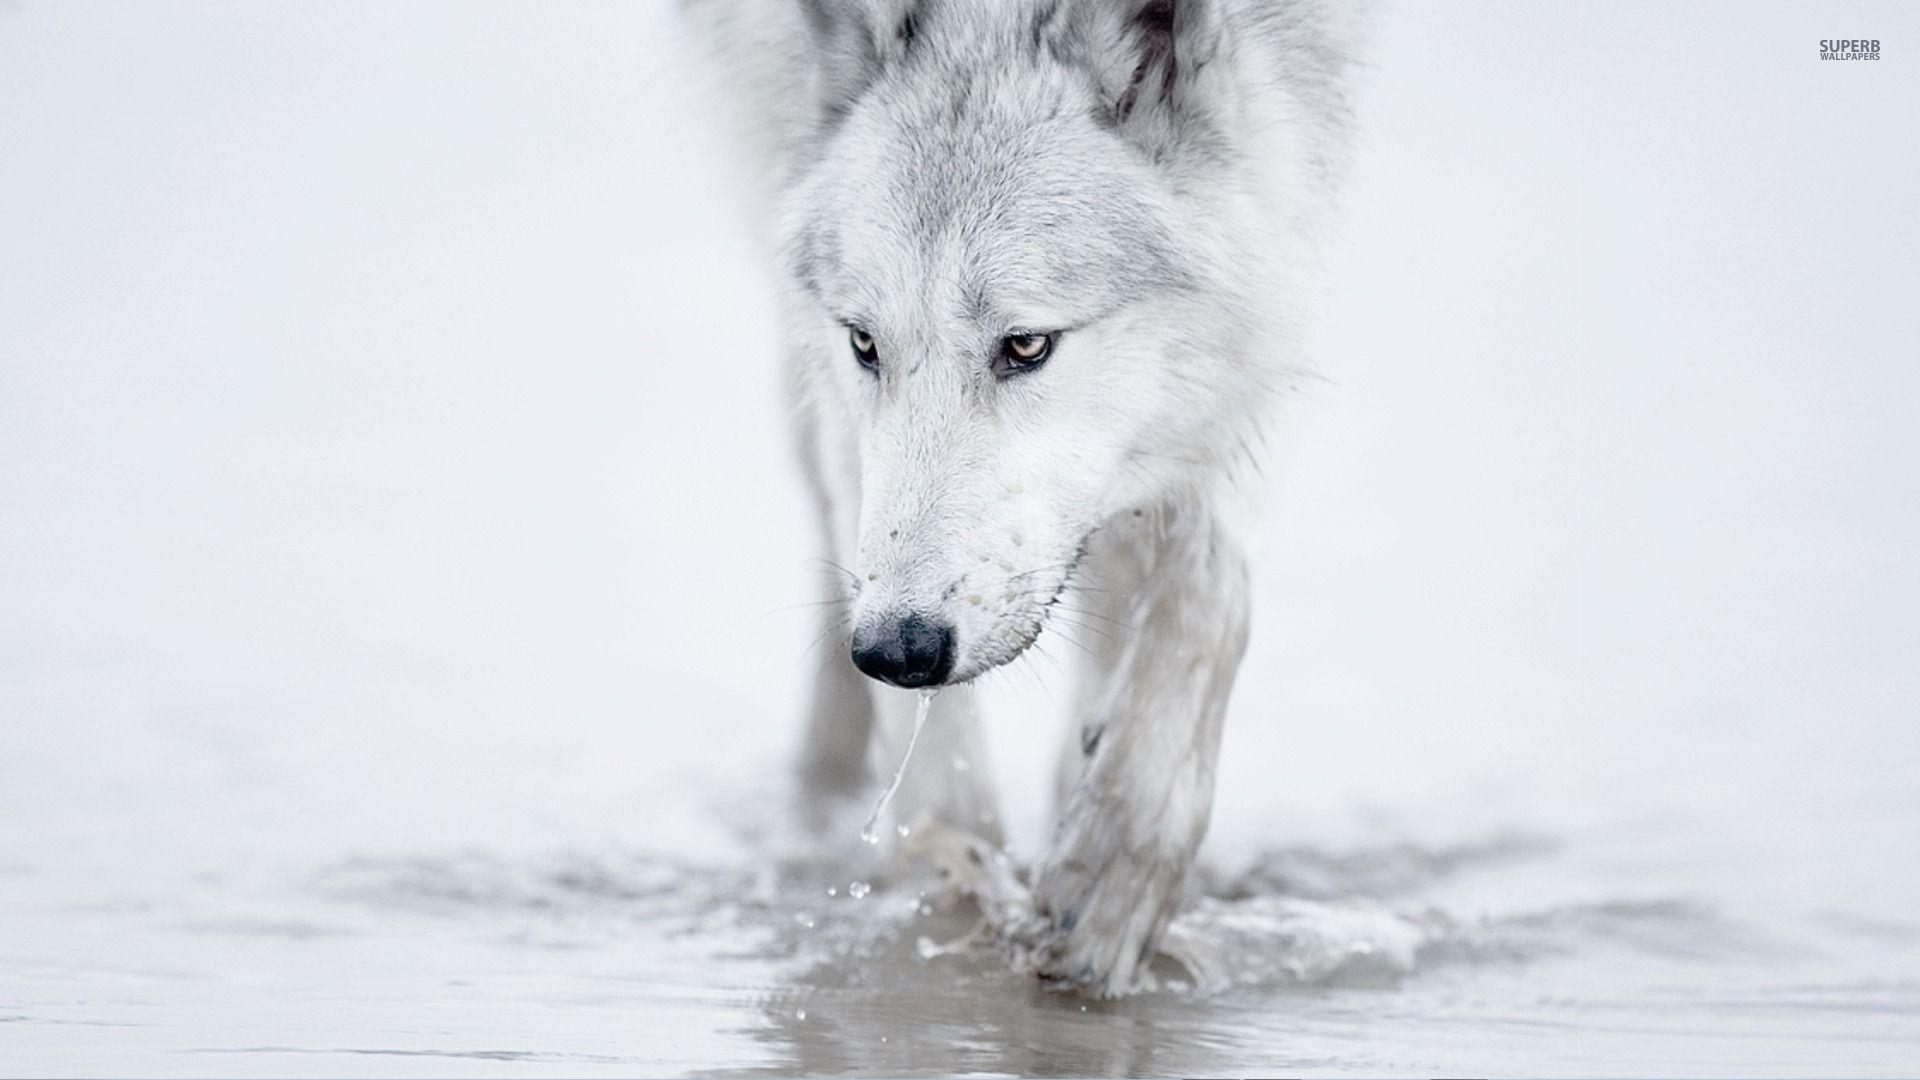 White Wolf Wallpapers Top Free White Wolf Backgrounds Wallpaperaccess